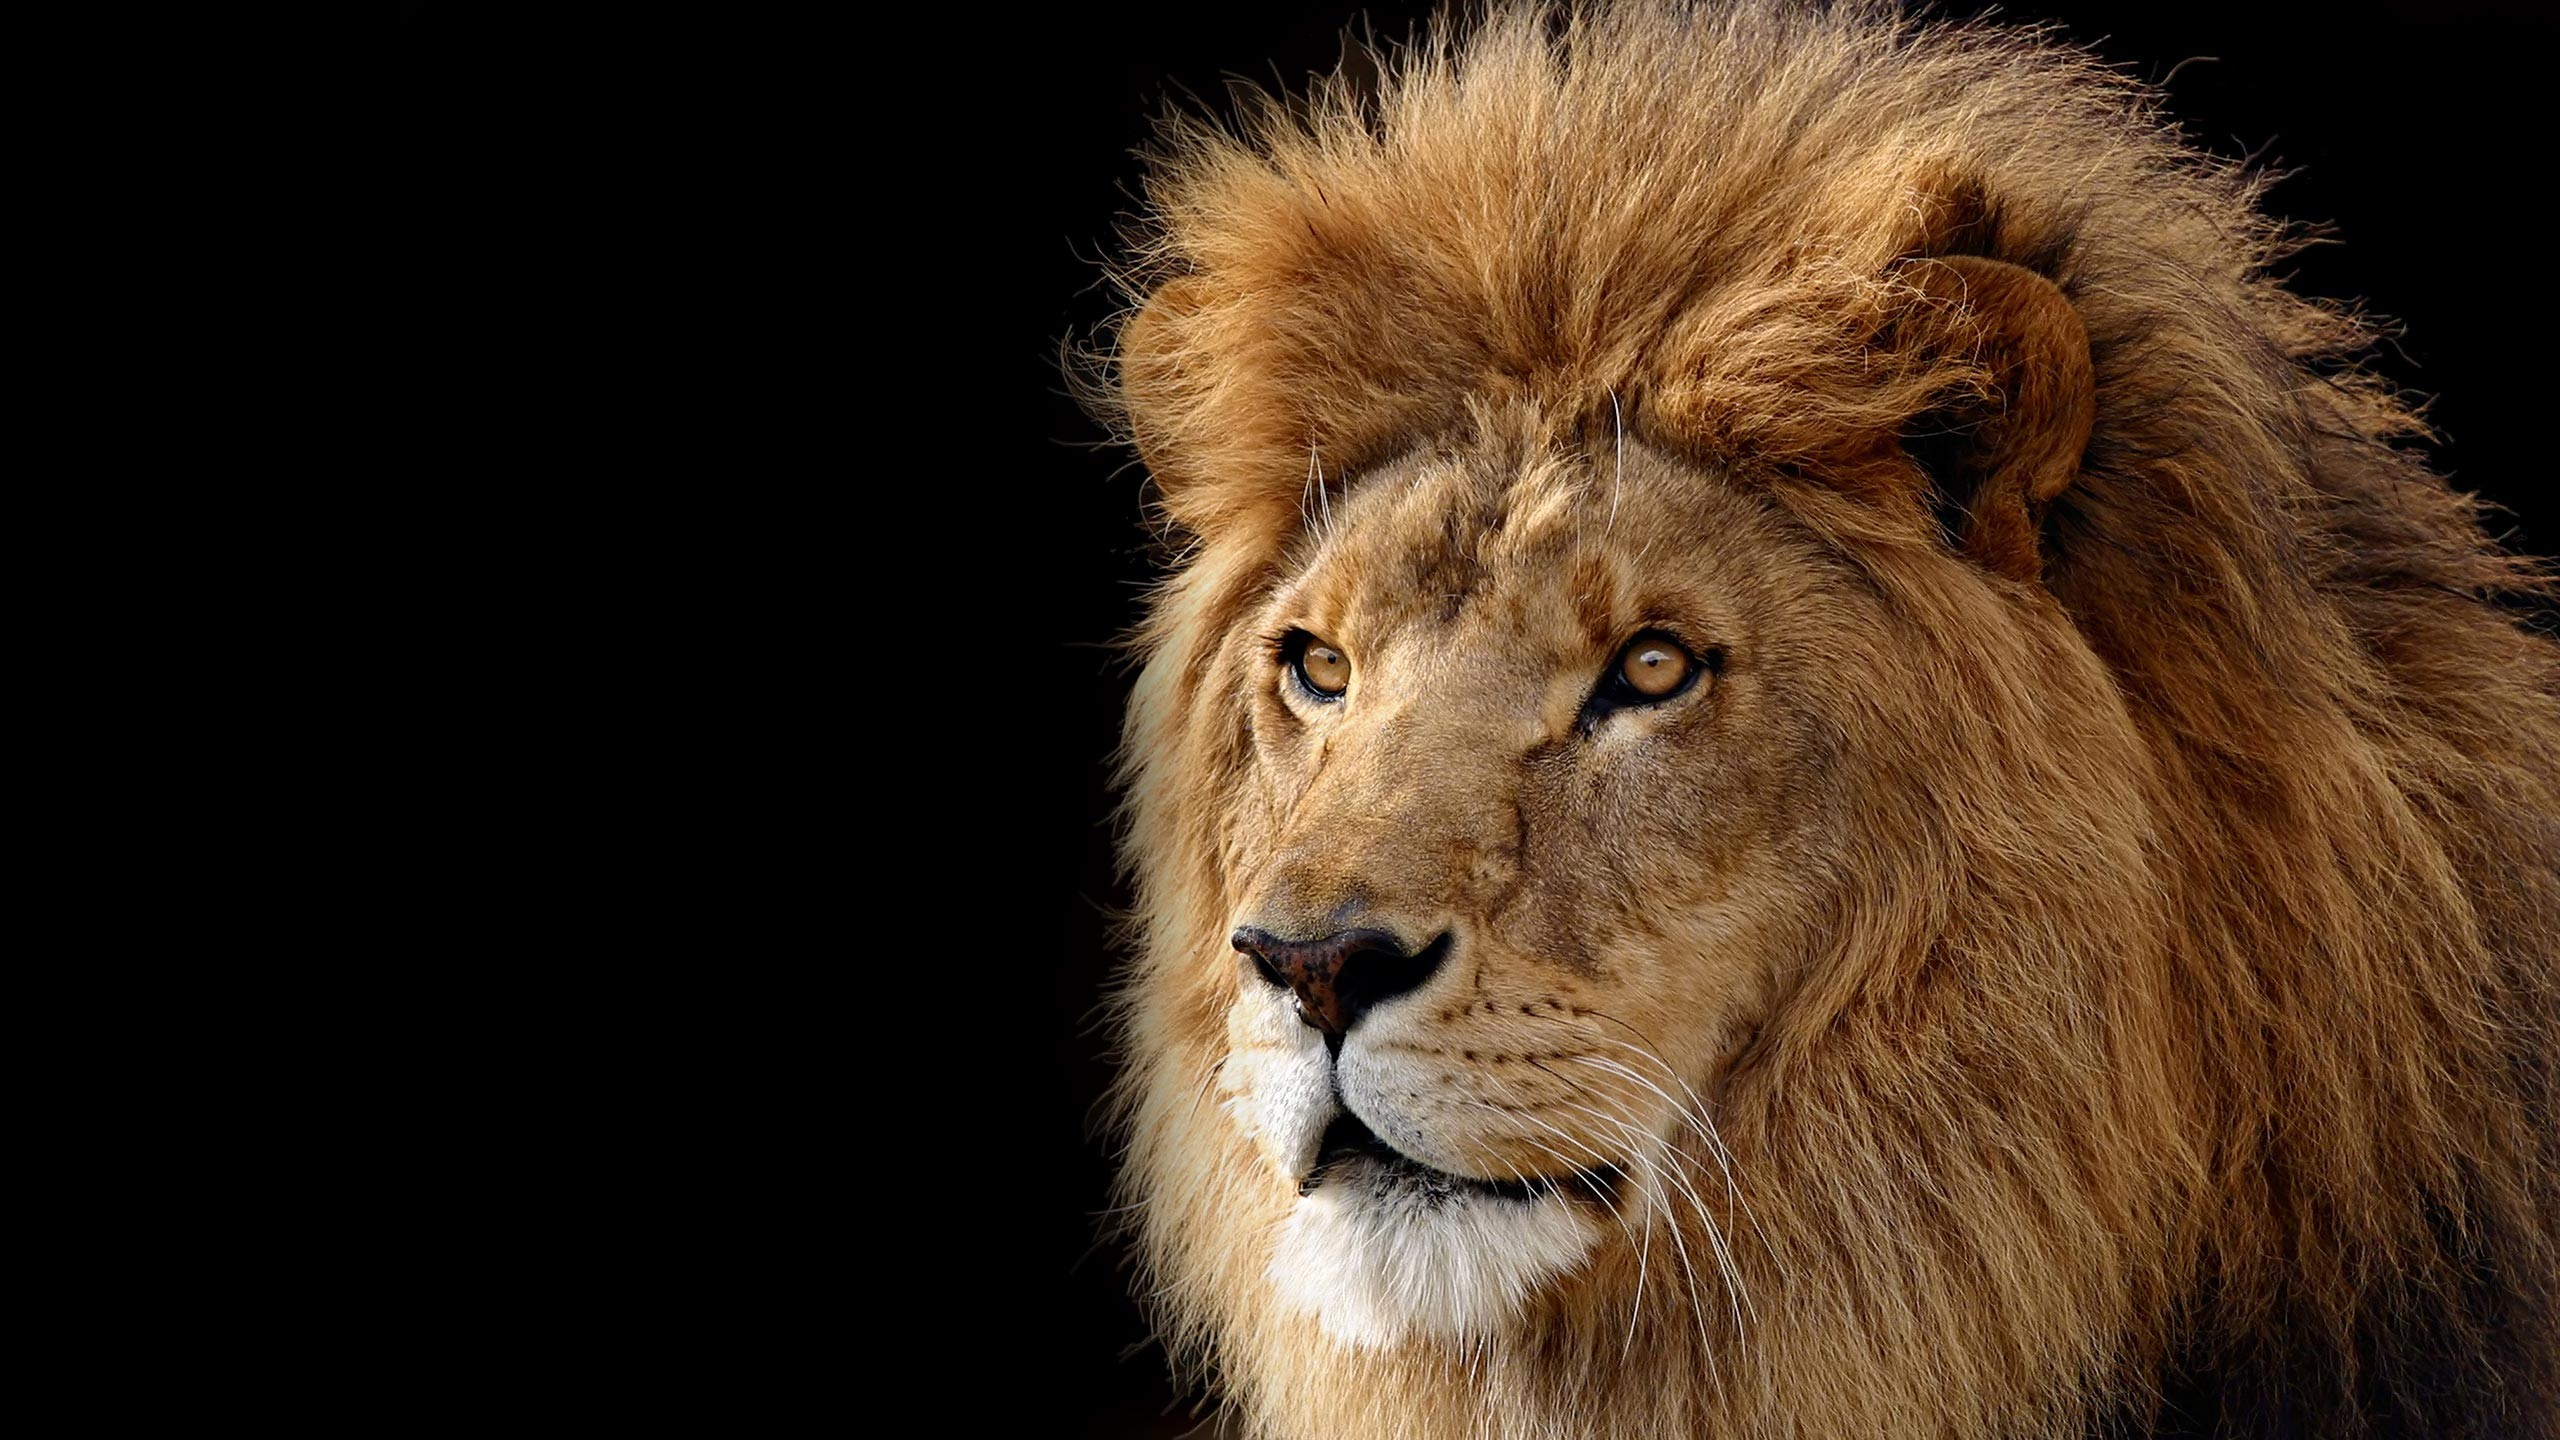 Res: 2560x1440, Lion Roaring Wallpaper Widescreen - image #786045